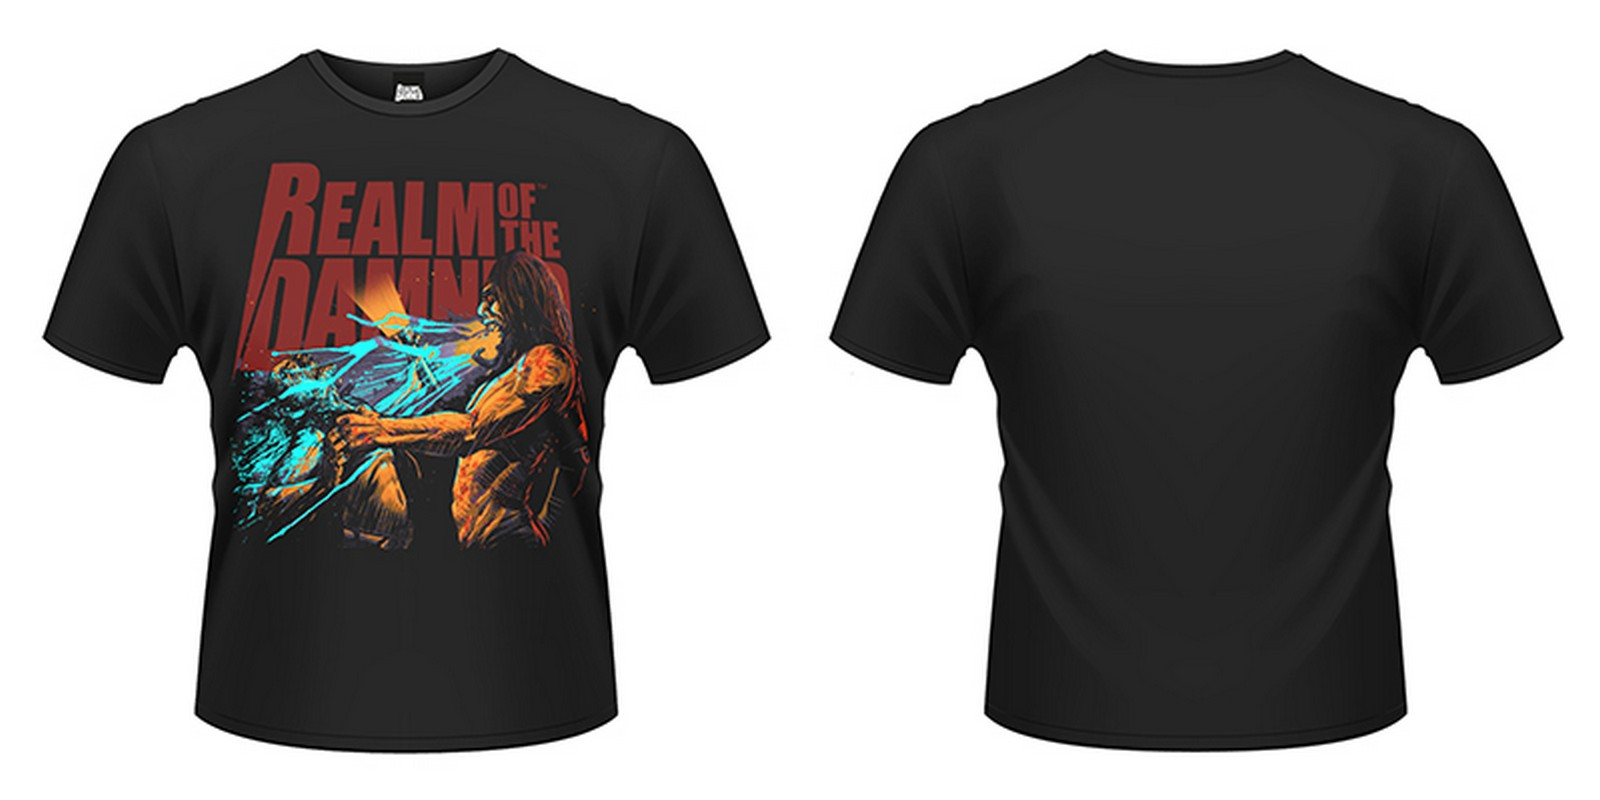 Realm-Of-The-Damned-Balaur-Scream-NEW-MENS-T-SHIRT